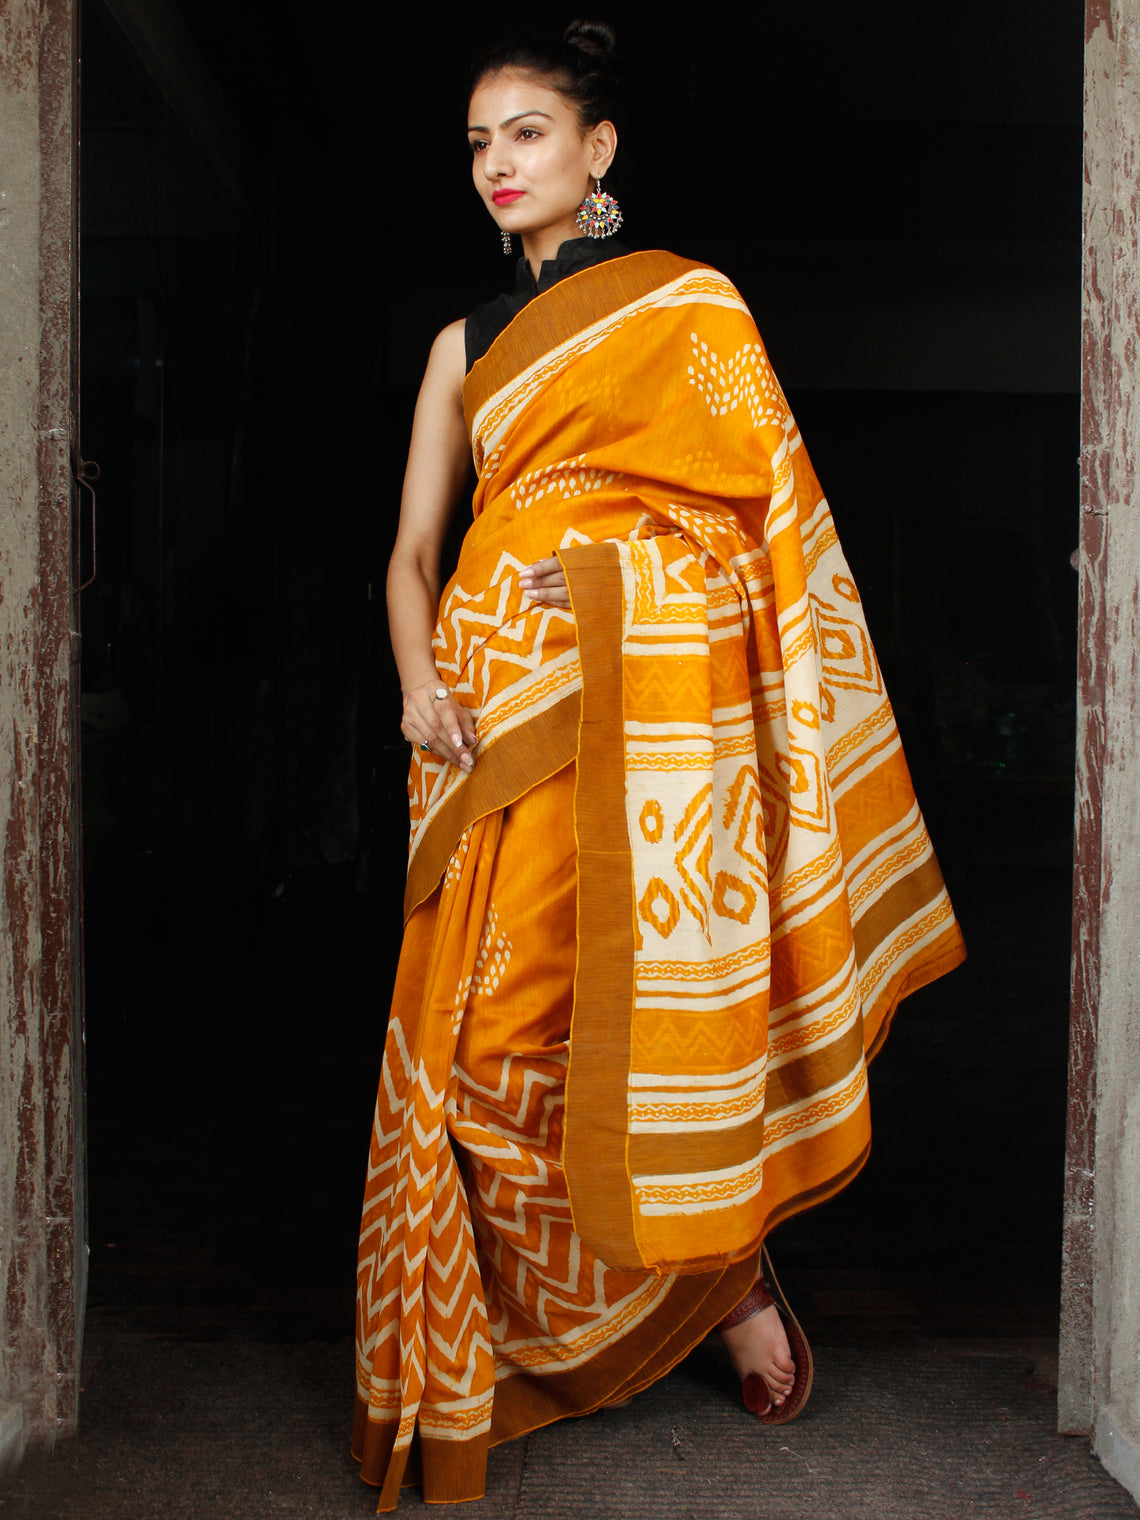 Golden Yellow Ivory Chanderi Silk Hand Block Printed Saree With Geecha Border - S031703597